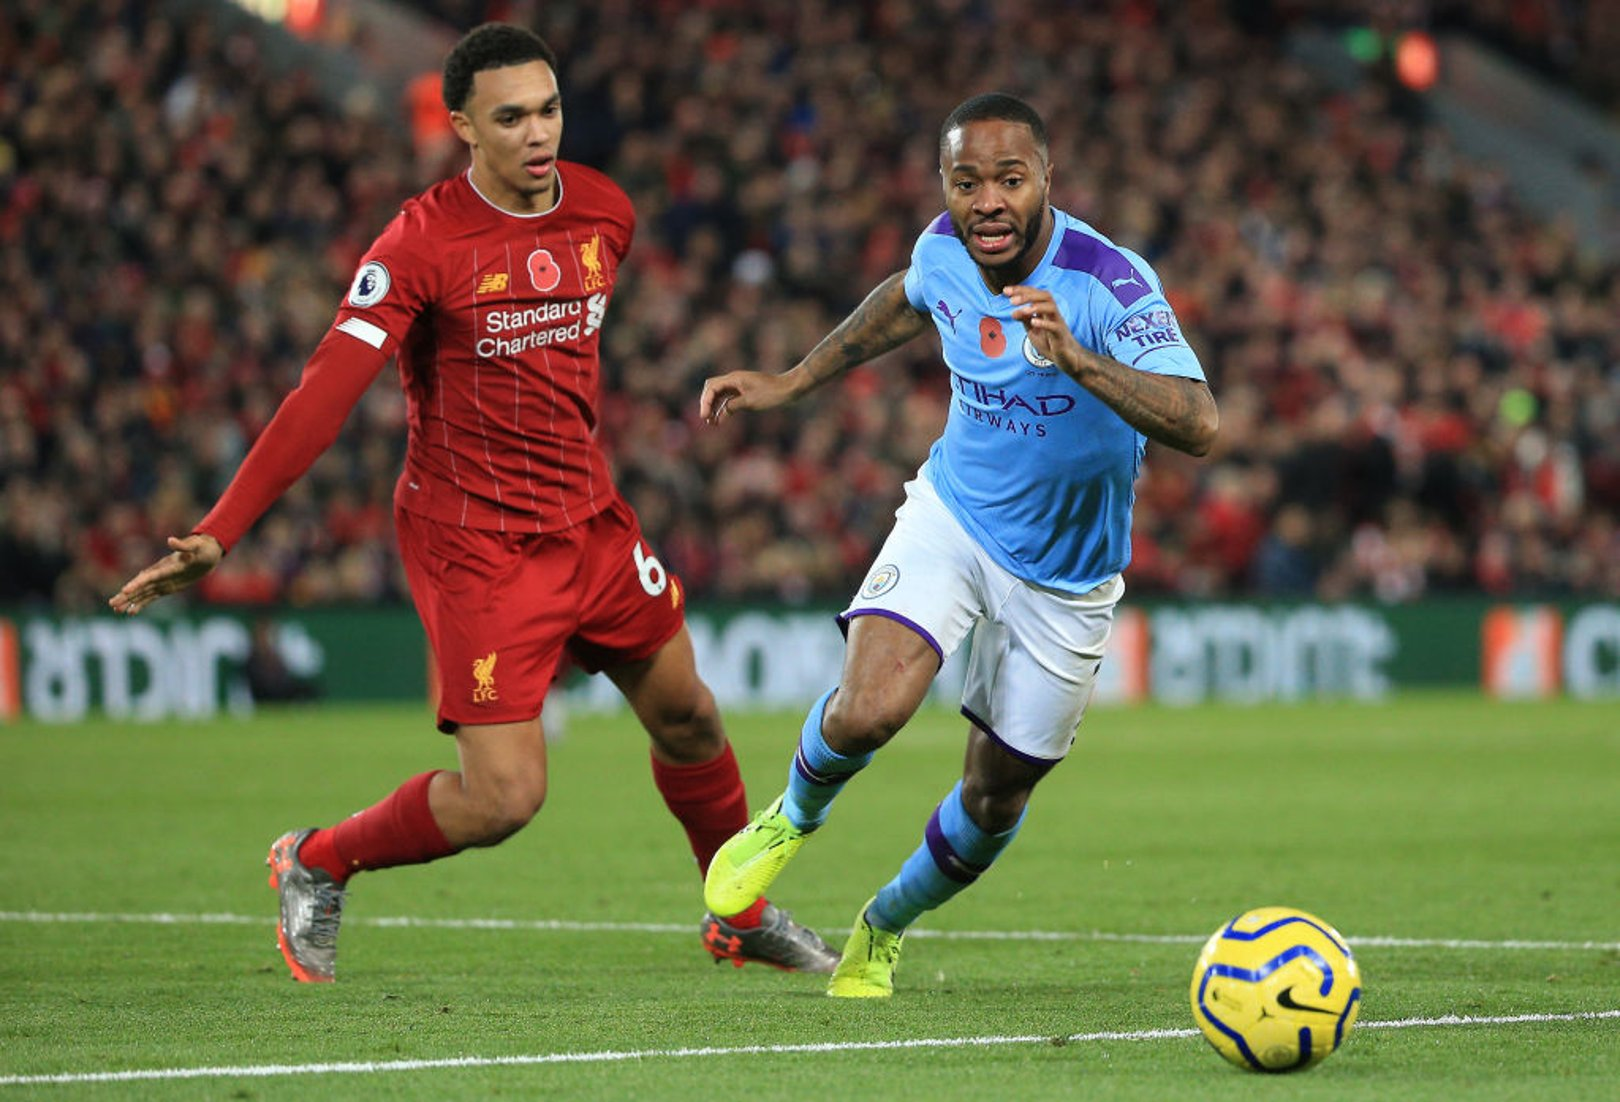 Sterling misses out on ePremier League final